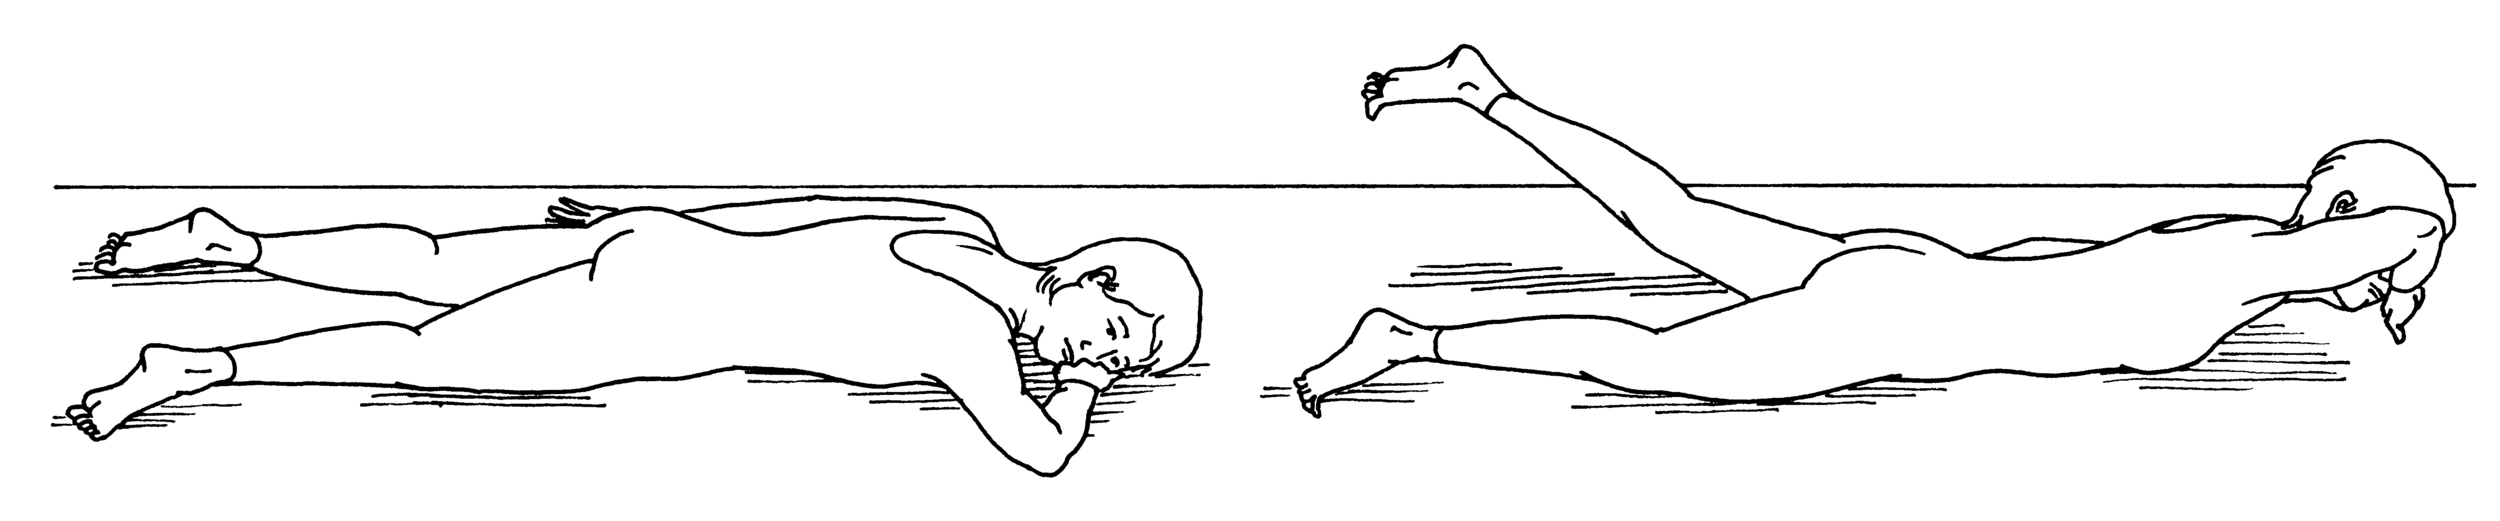 6.reverse sit up right side.jpg